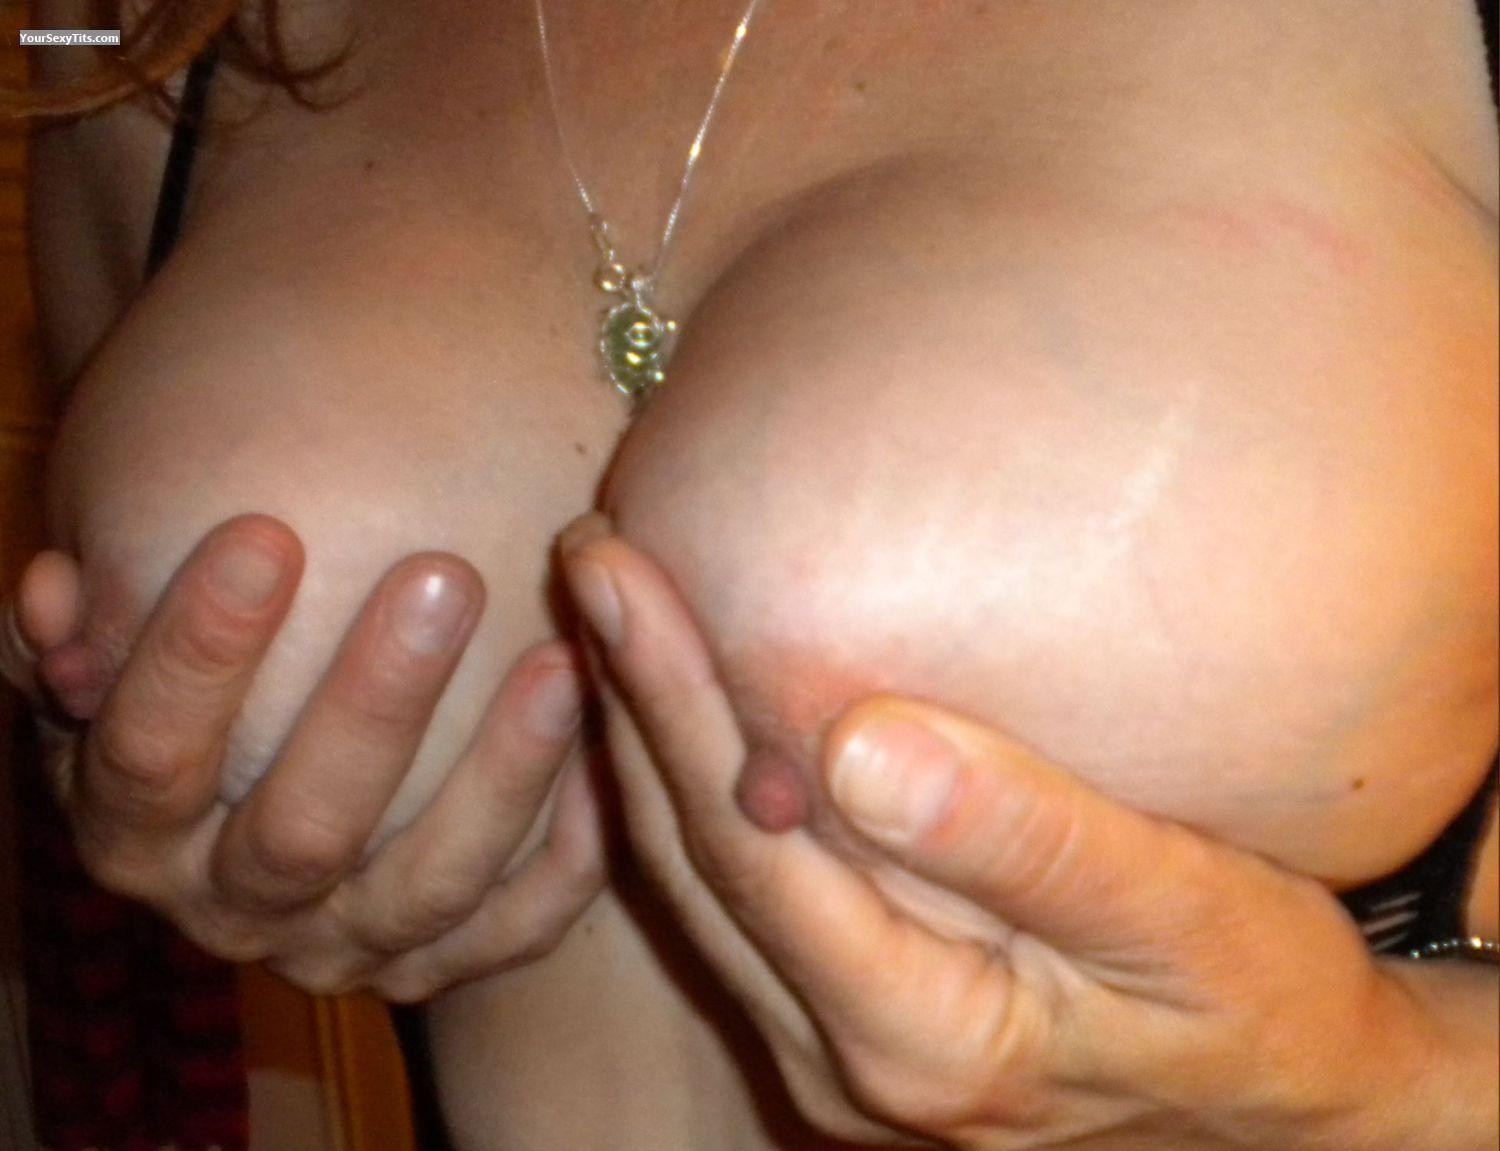 big tits - hot mom from united states tit flash id 38044